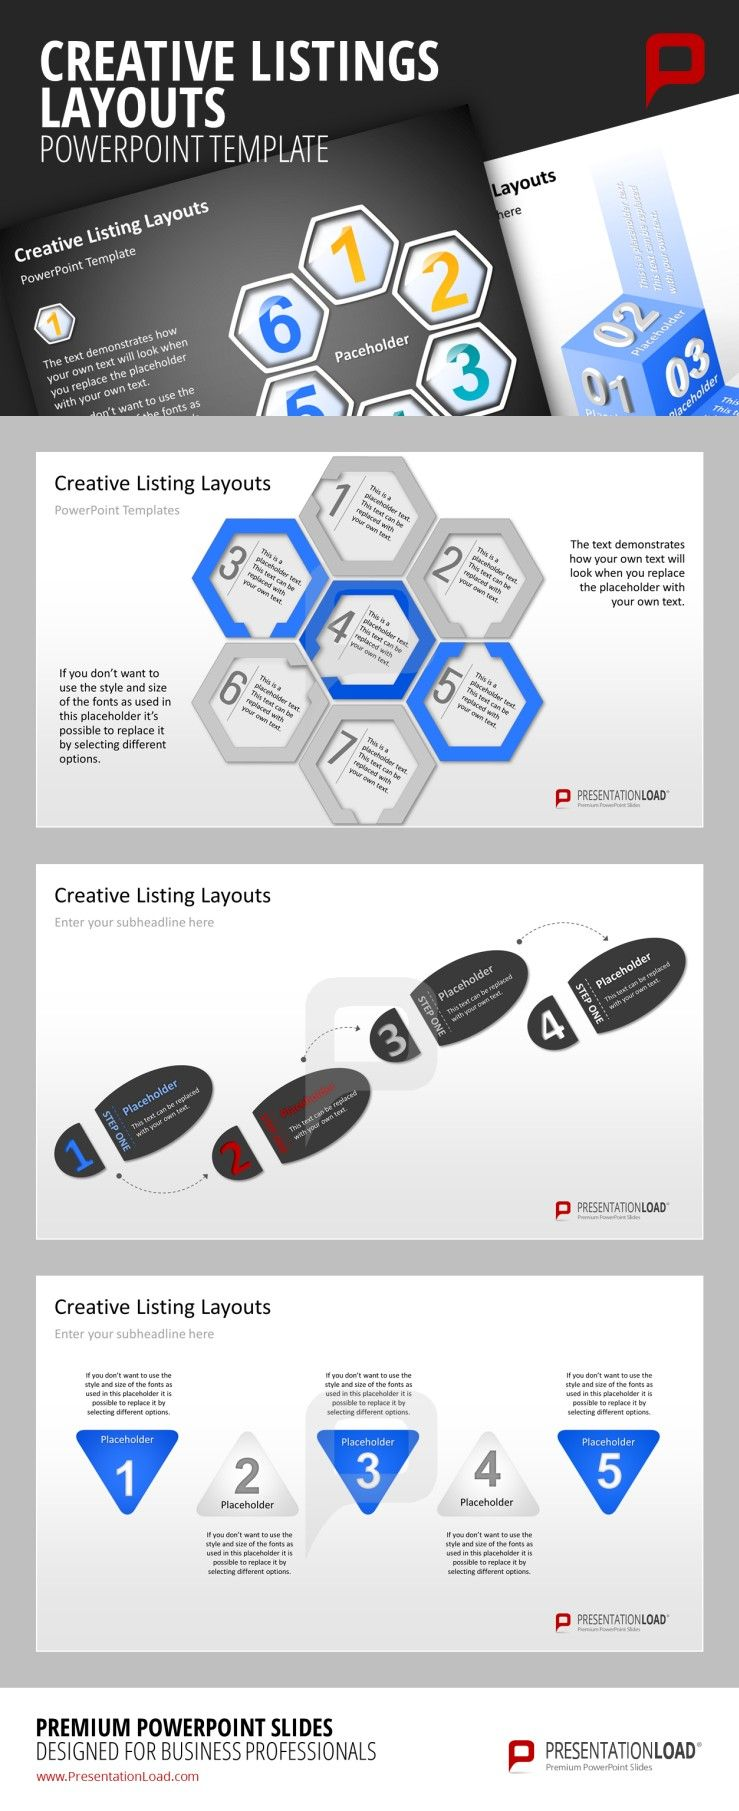 Creative Listings Powerpoint Template Get Creative And List Your